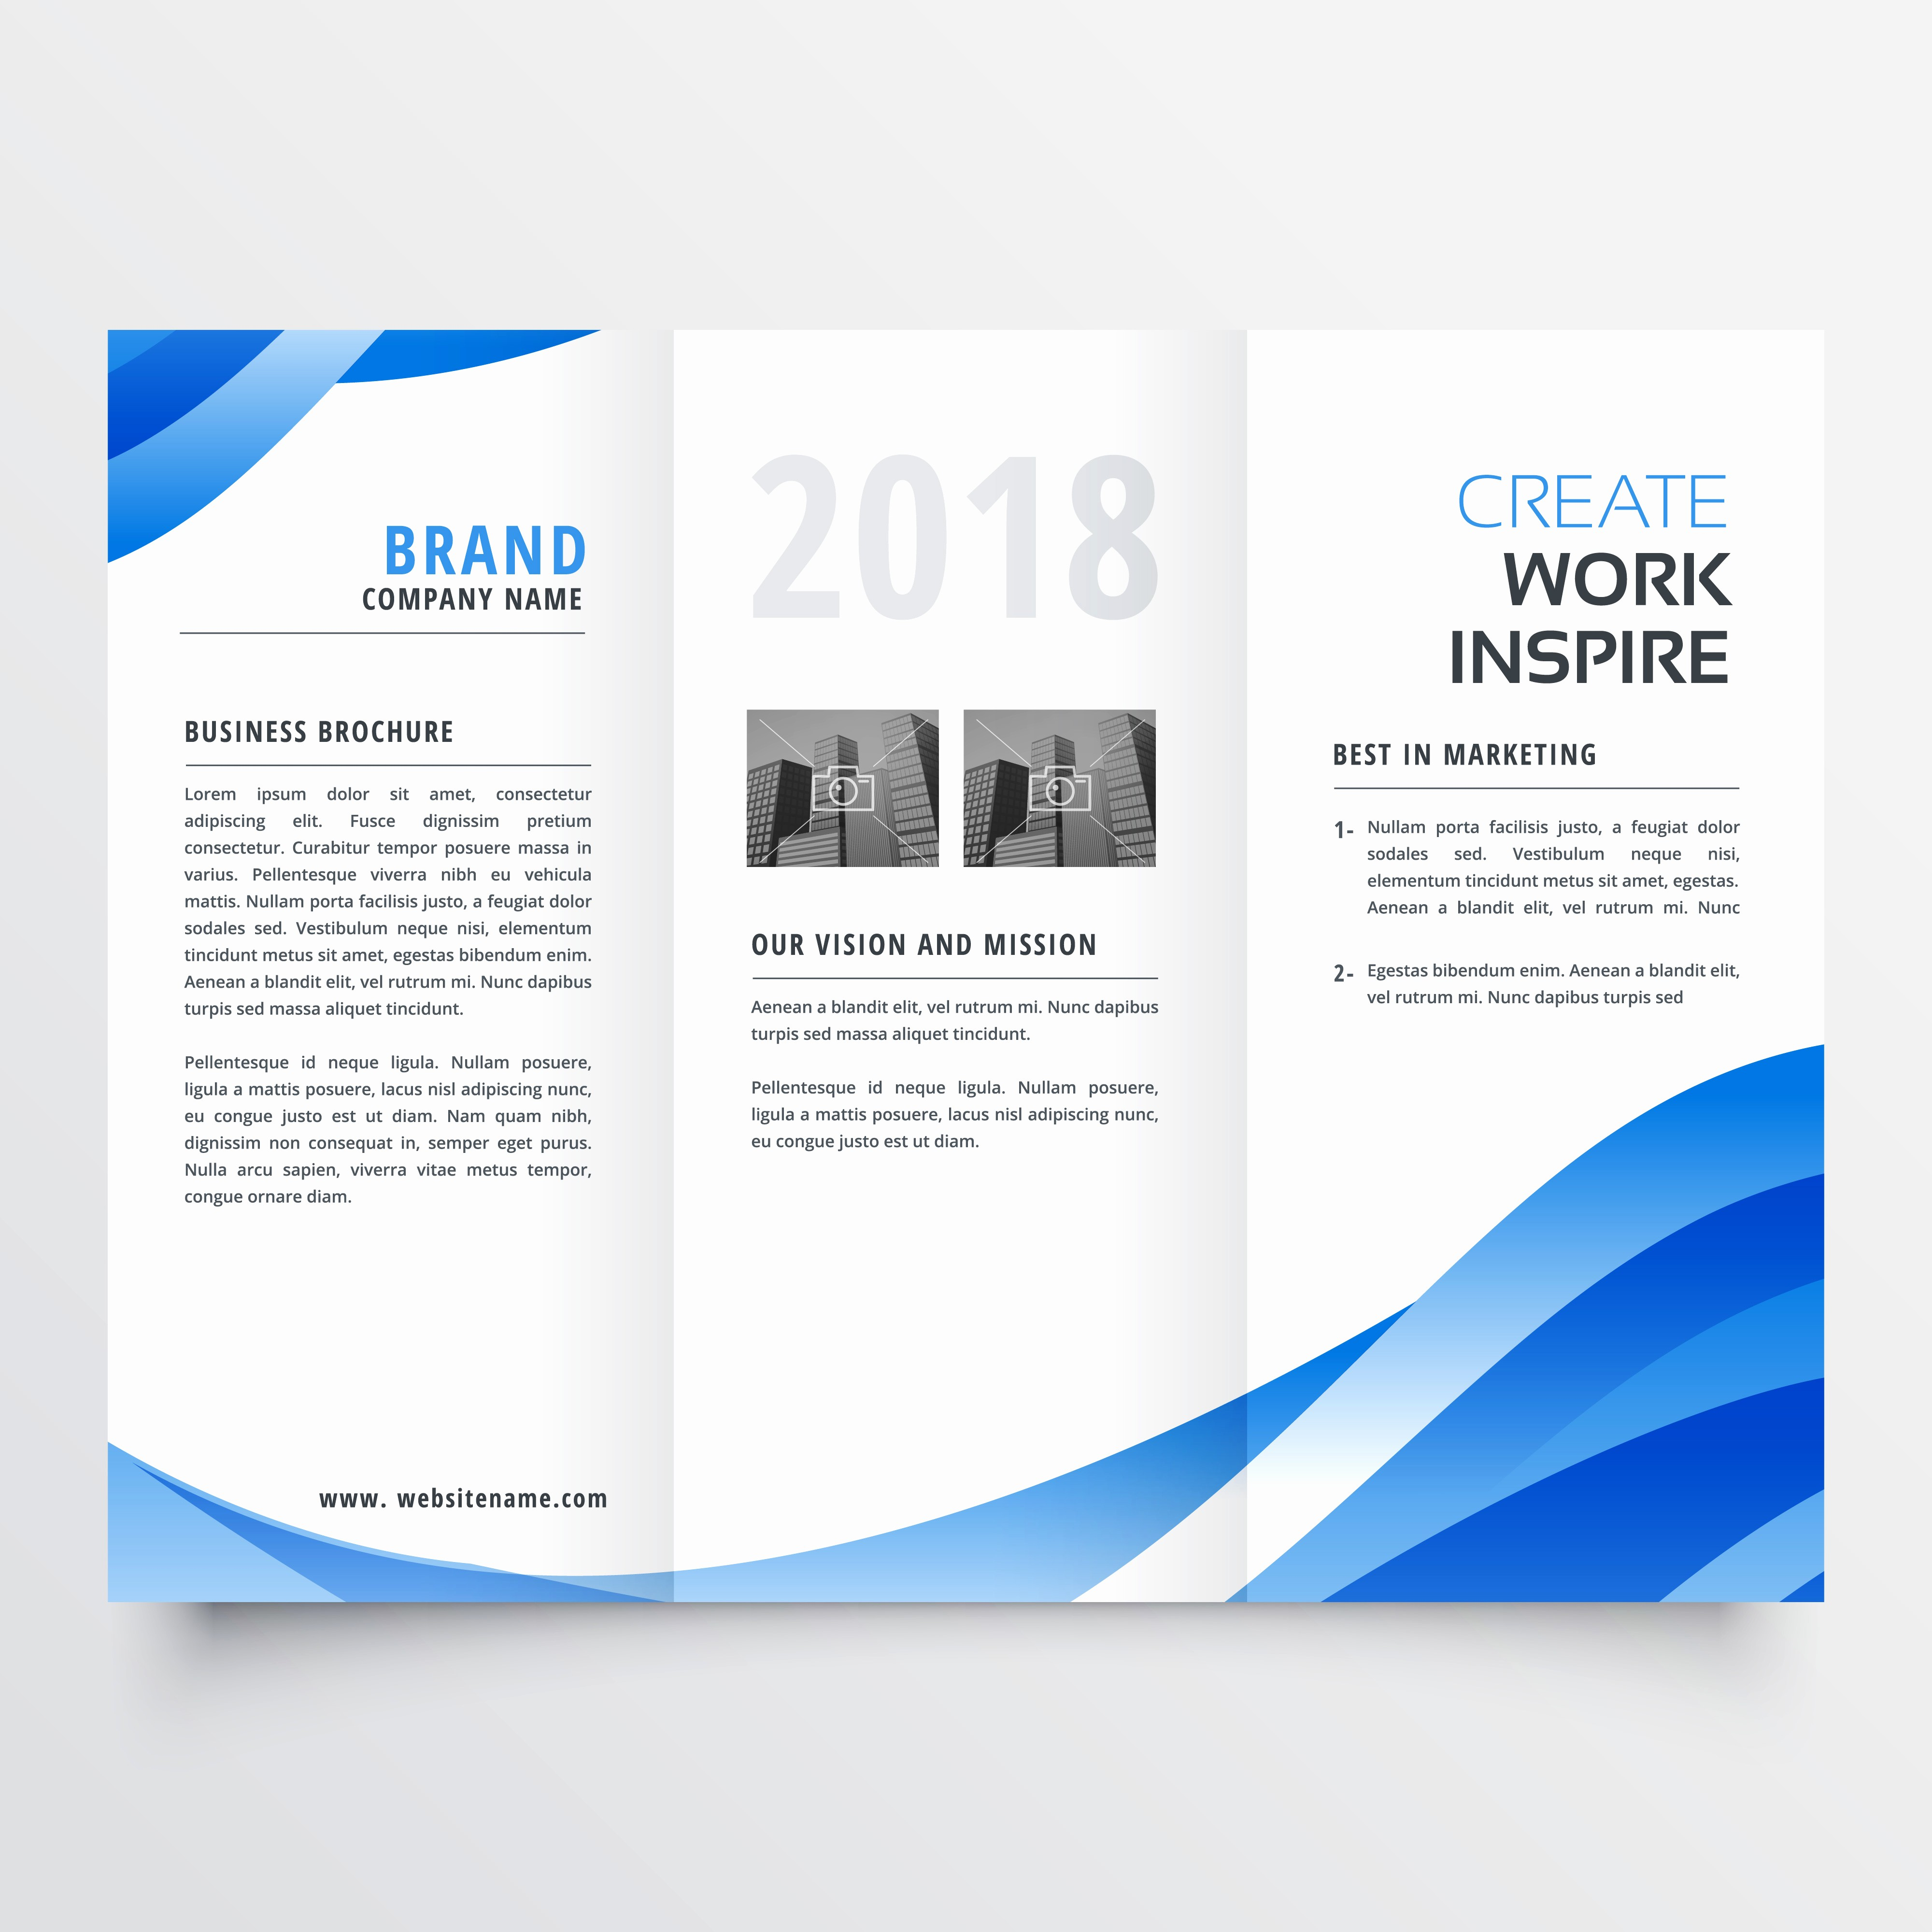 Templates for Flyers and Brochures New Creative Tri Fold Brochure Design Template with Trendy